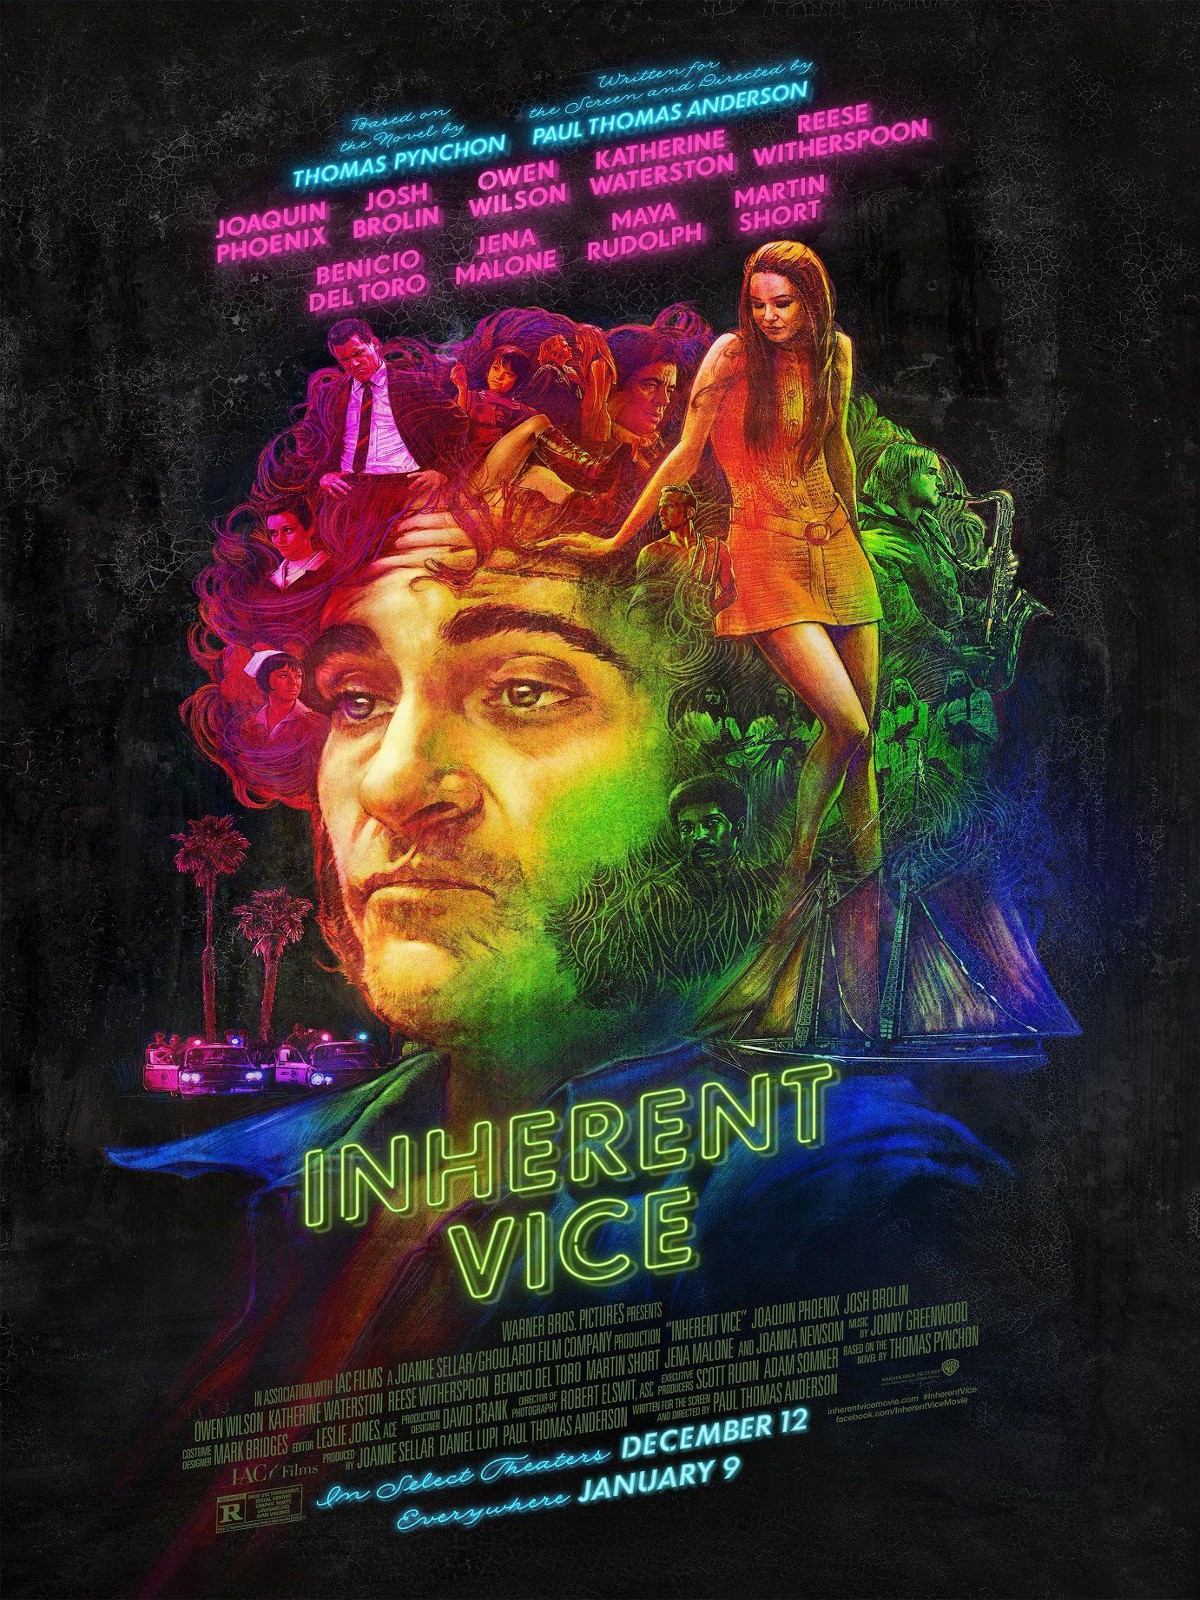 Inherent vice anderson